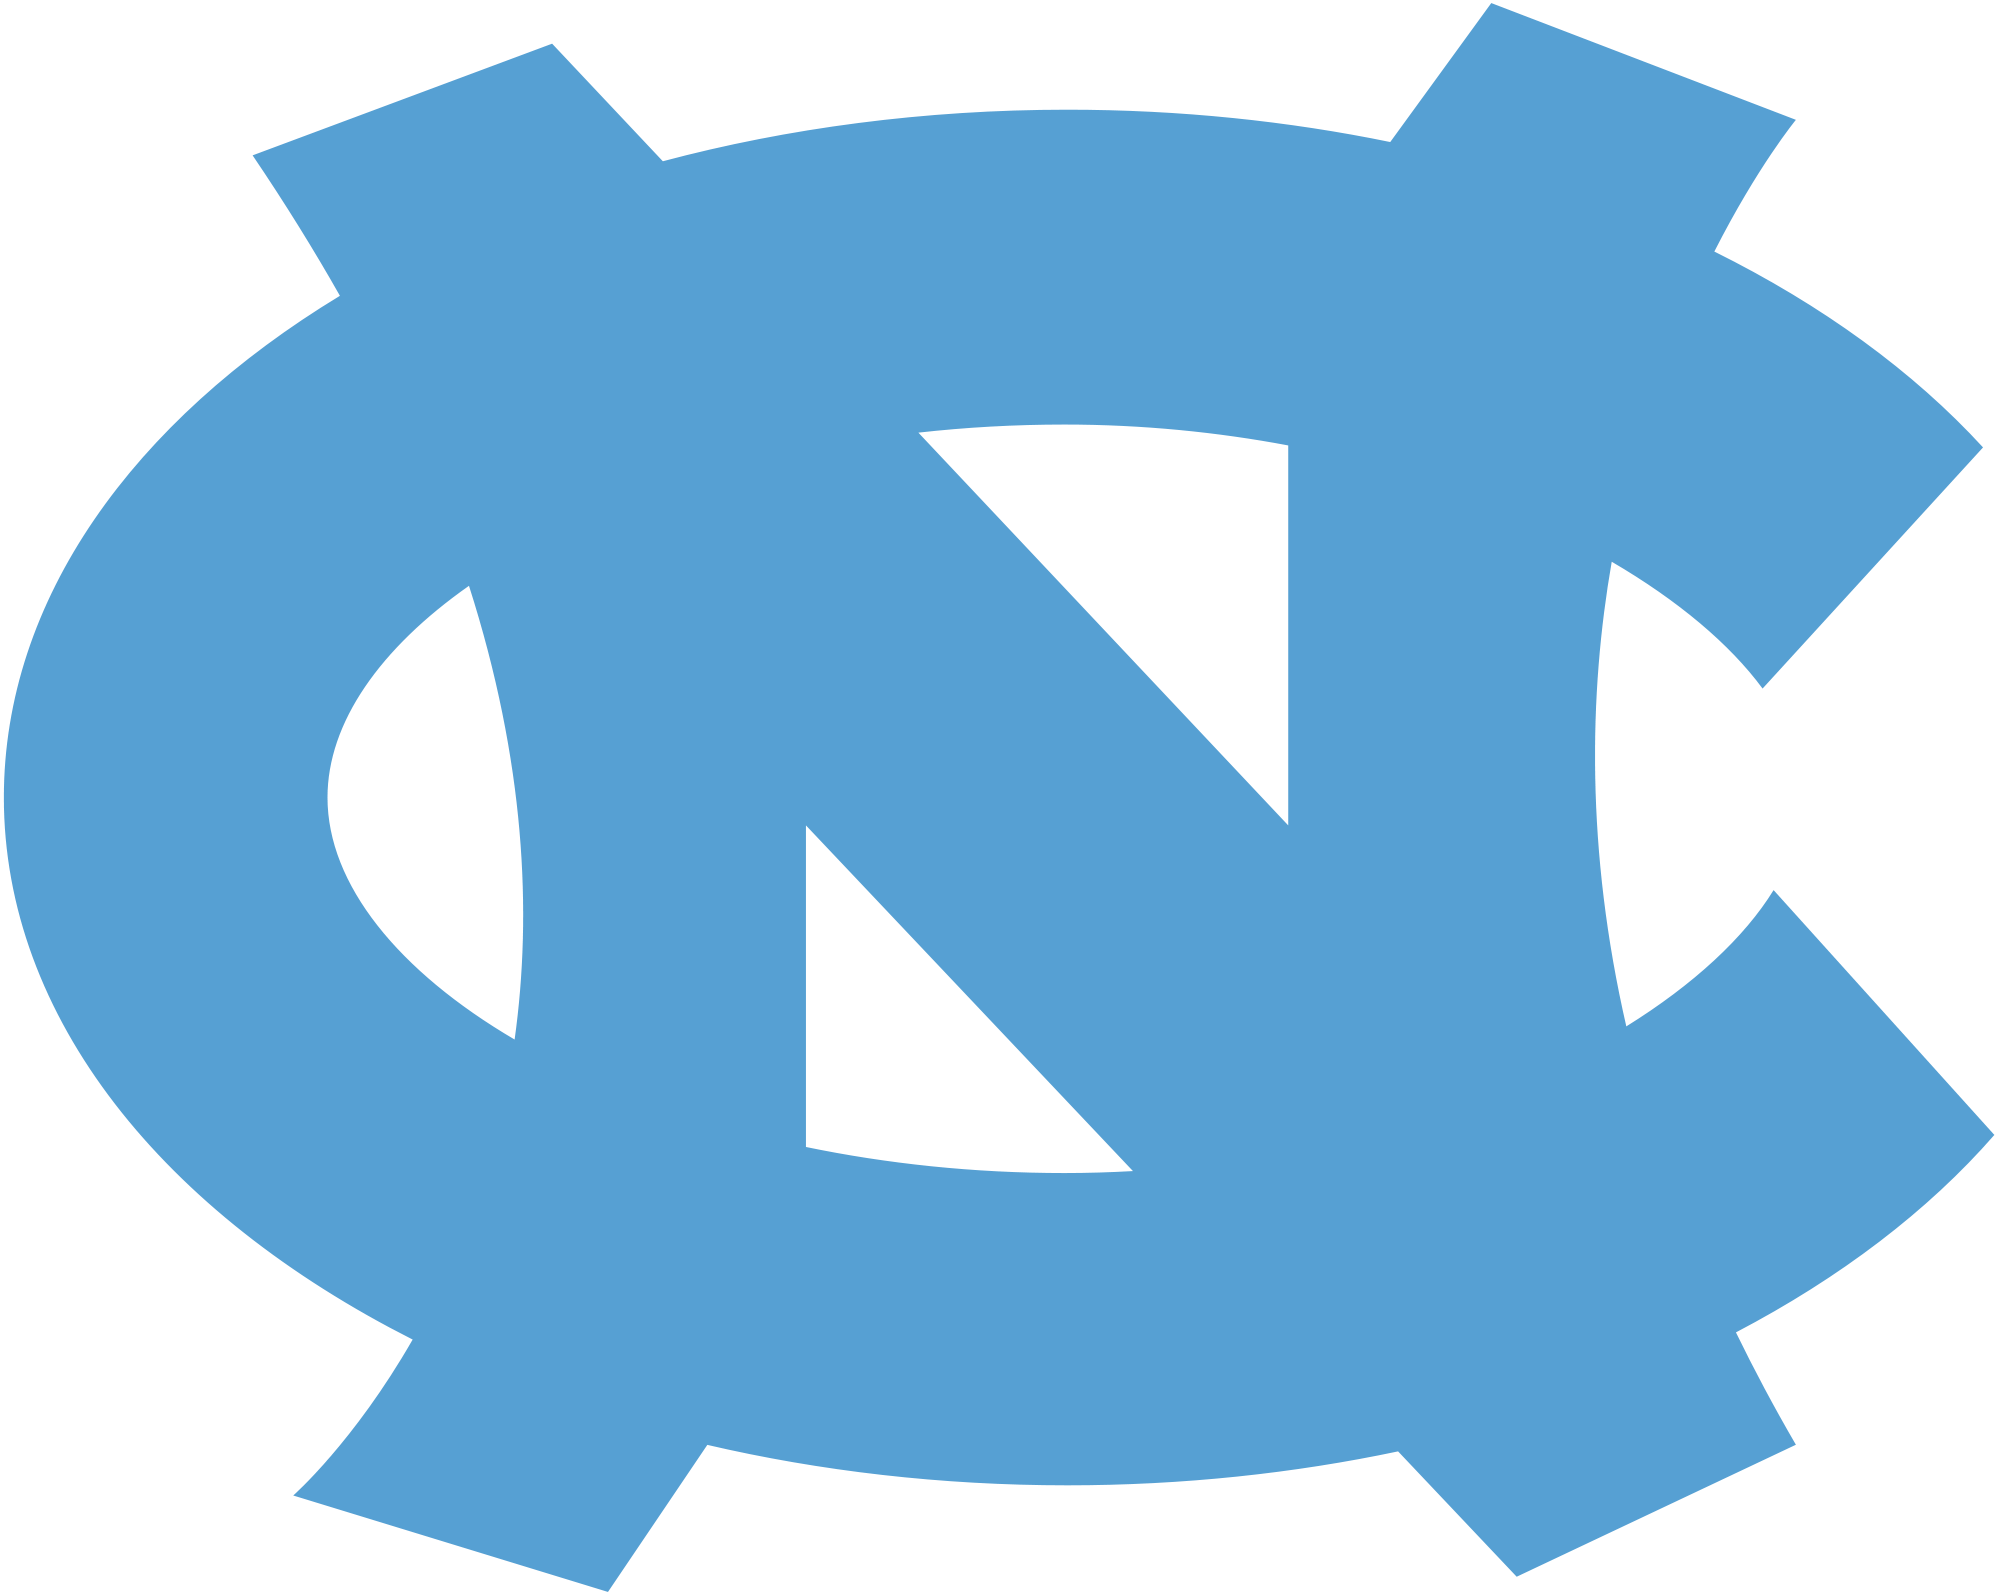 Unc logo google search cricut pinterest unc logo and cricut english university of north carolina tarheels interlocking nc logo photo credit wikipedia football players cheating in carolina rem buycottarizona